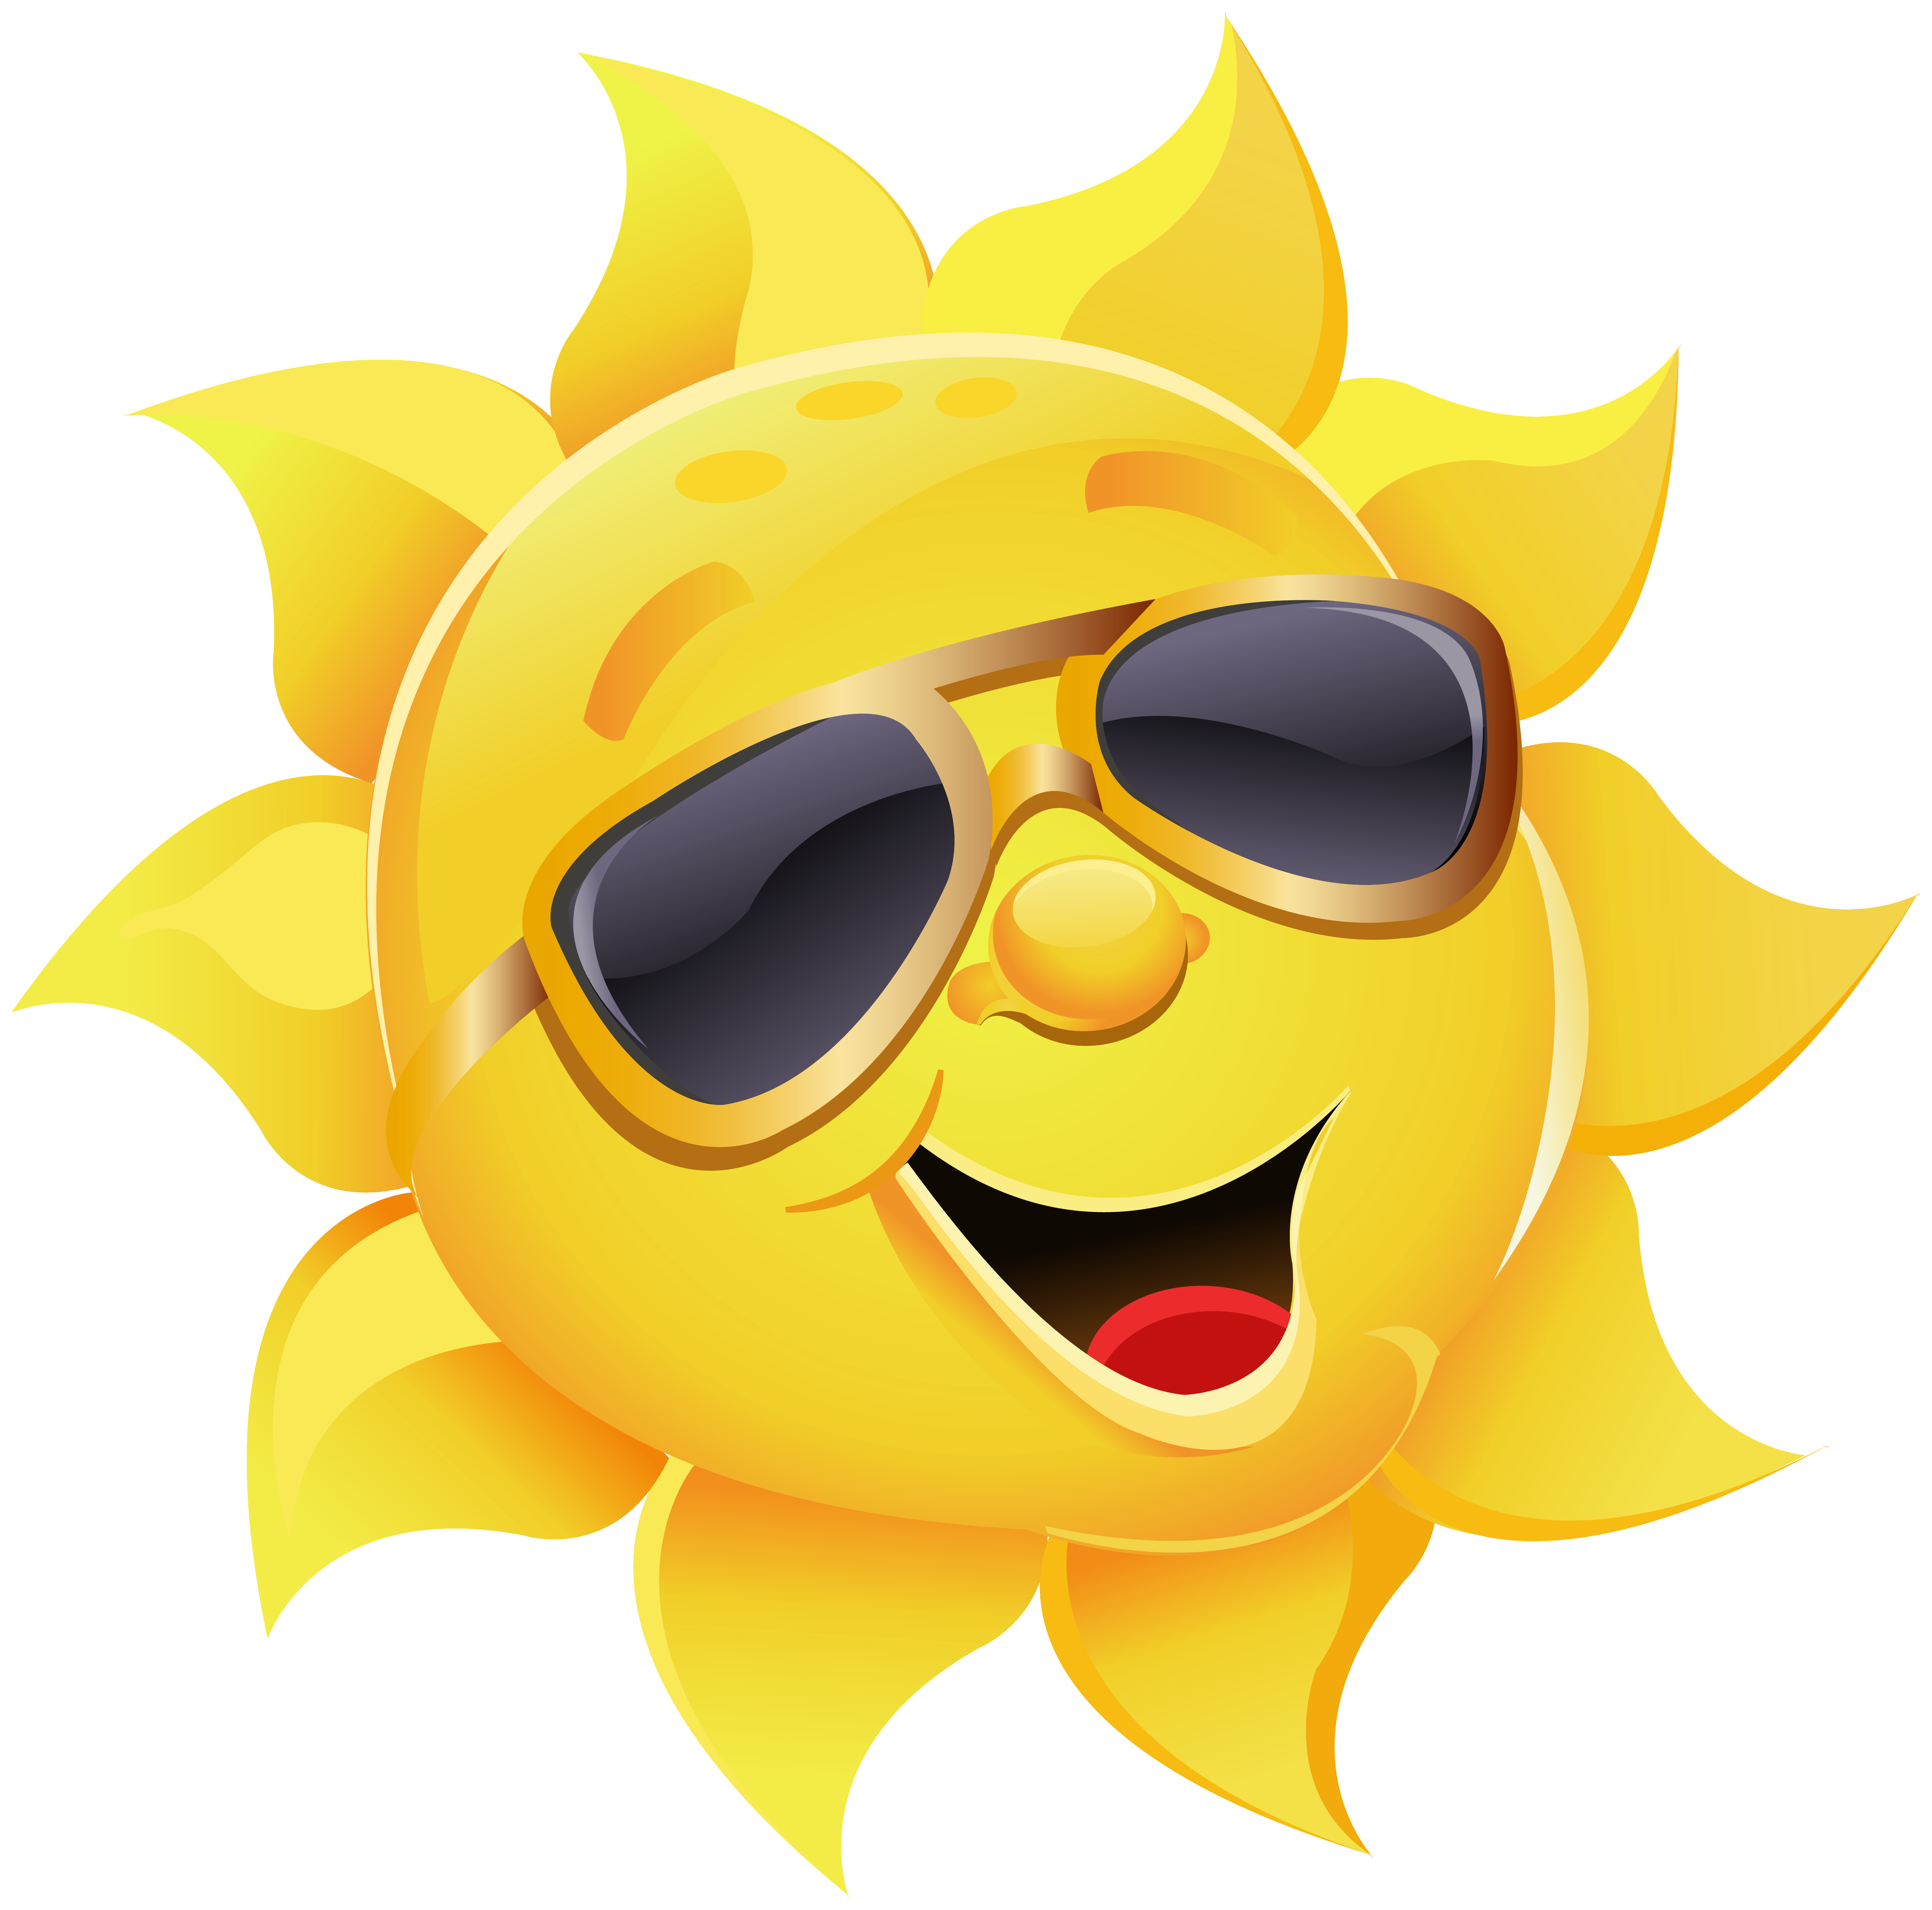 Sun with sunglasses png. Sunny clipart chasma